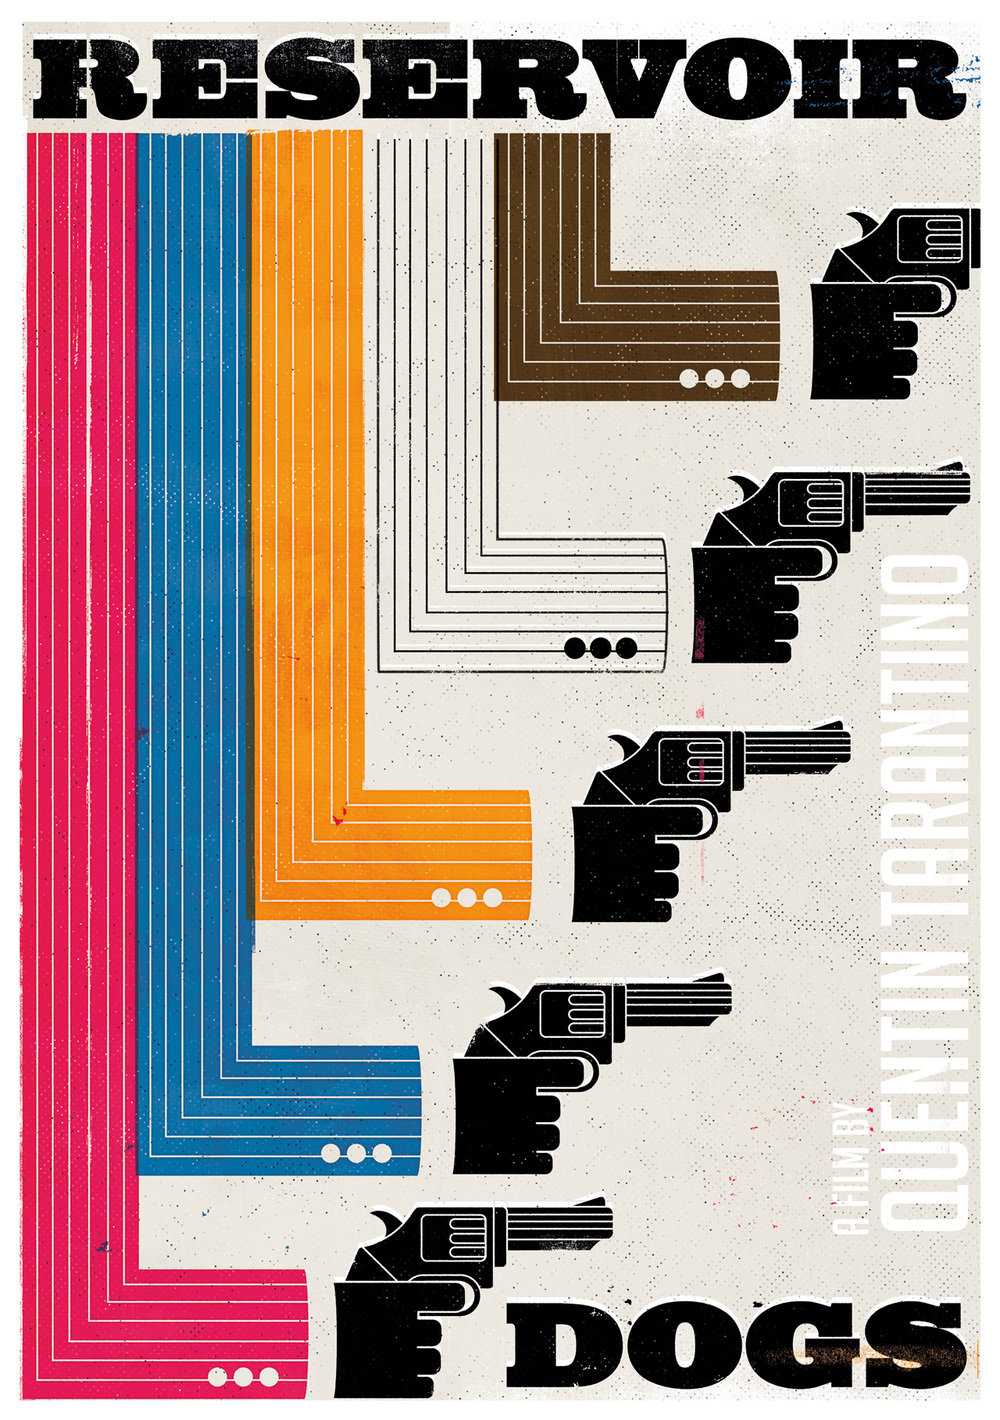 freelance illustrator dale edwin murray conceptual reservoir dogs poster illustration